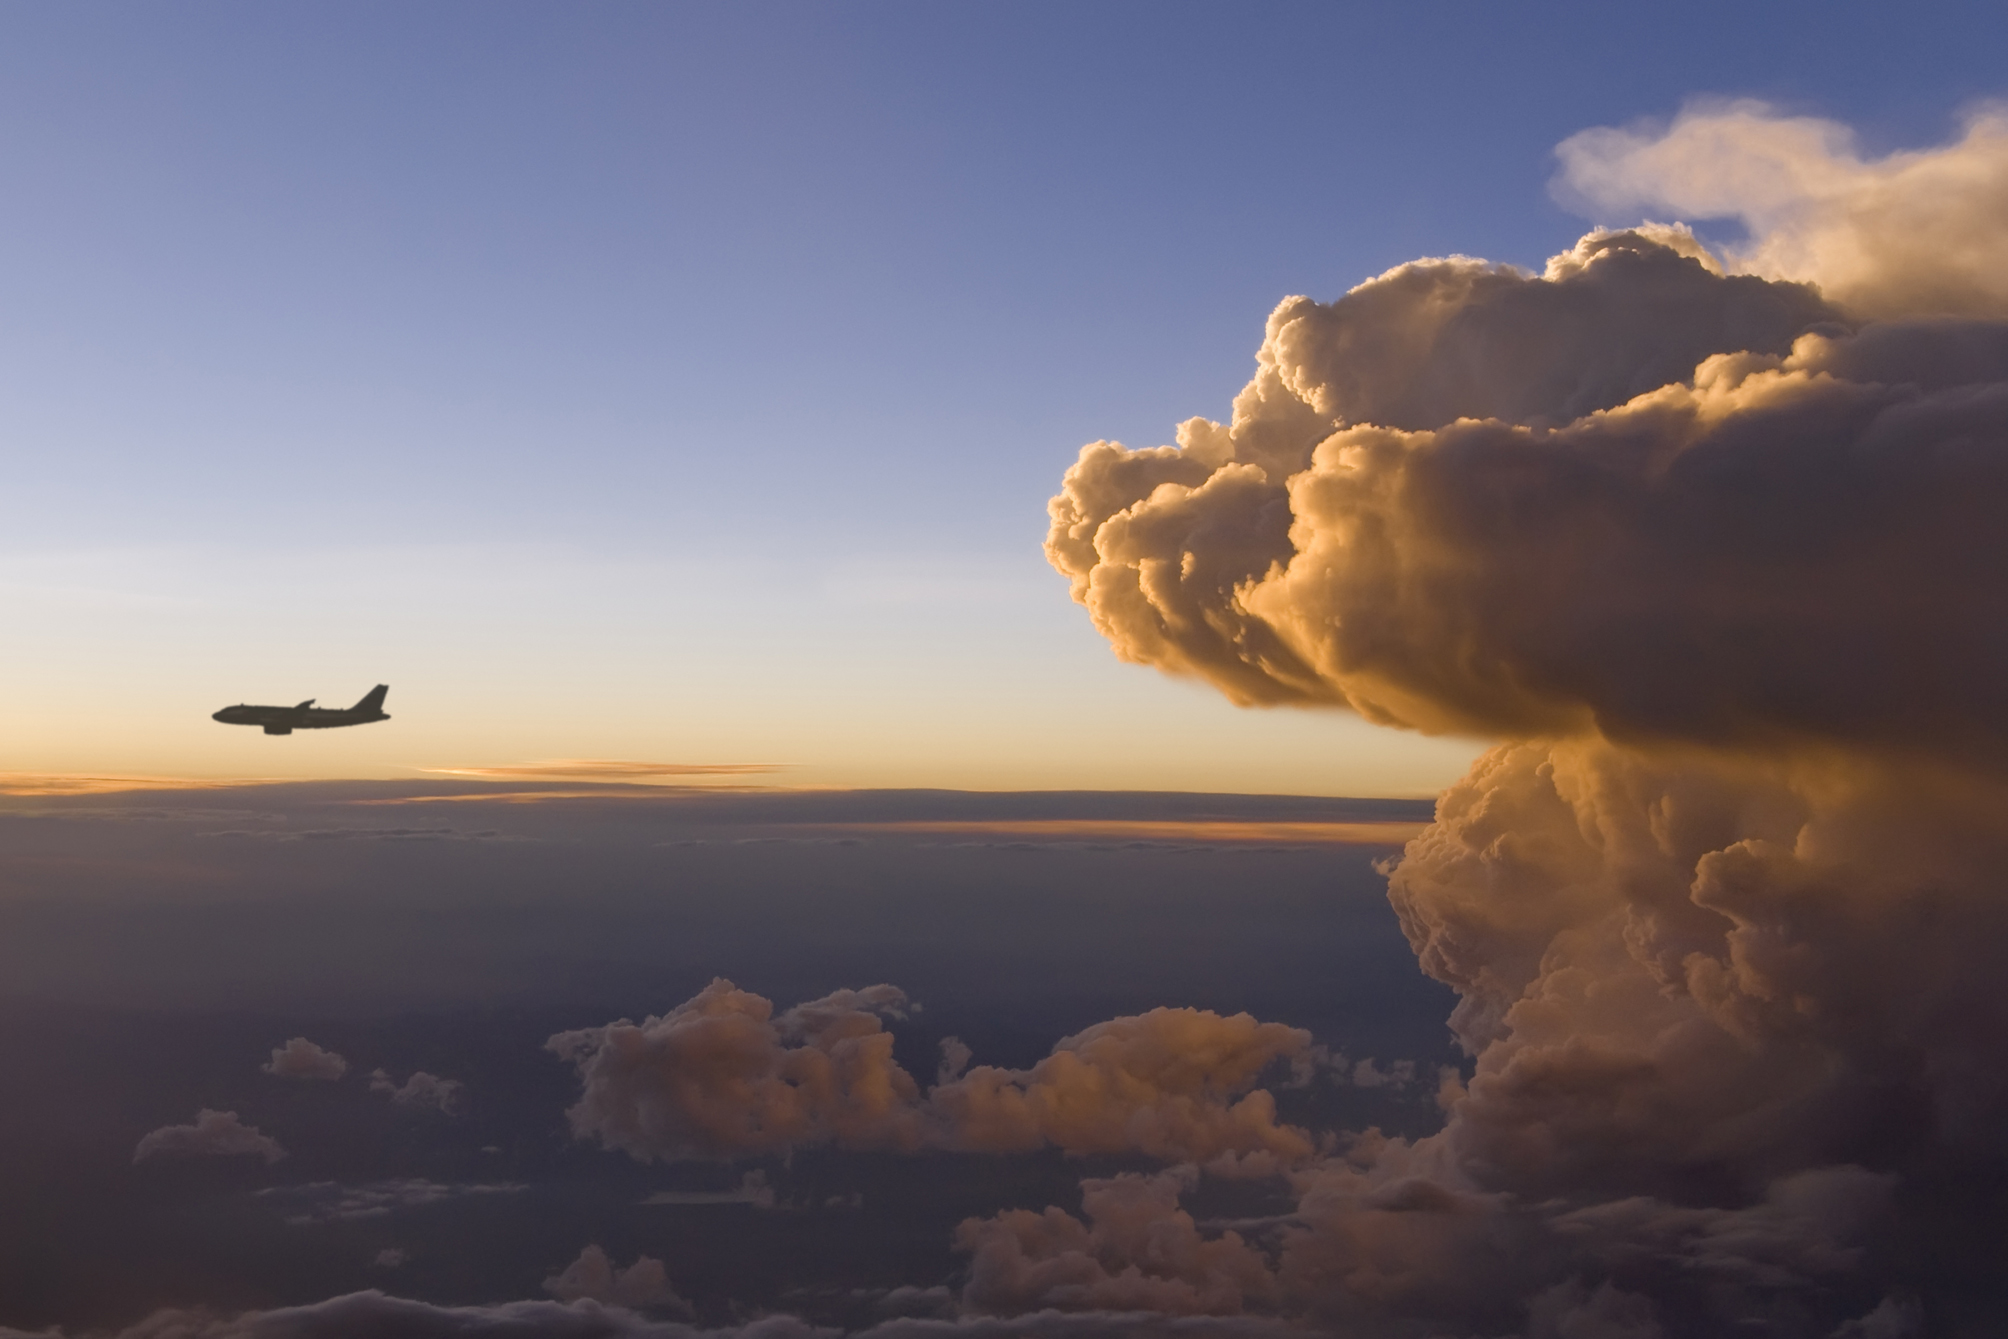 Plane coming out of cloud